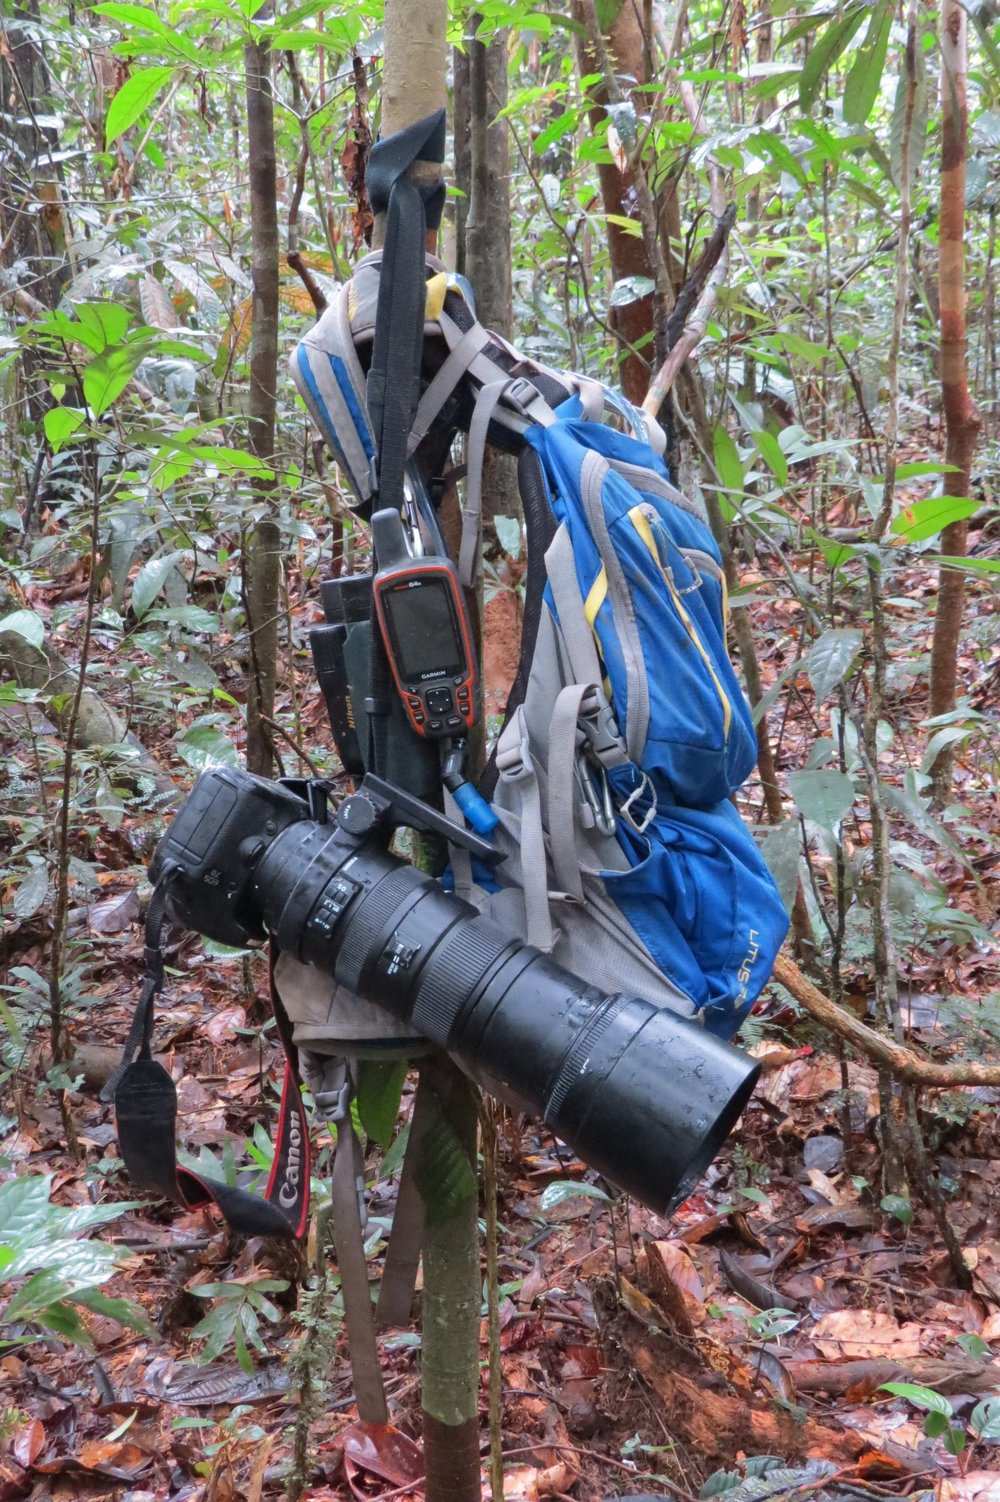 Just some of the gear our DP would bring with him in the field. Along with the drone and camcorder, he often brought his still Nikon camera, binoculars and a GPS unit. We would hang our gear in small saplings to keep ants from getting in it. Photo by Ivan Batista.